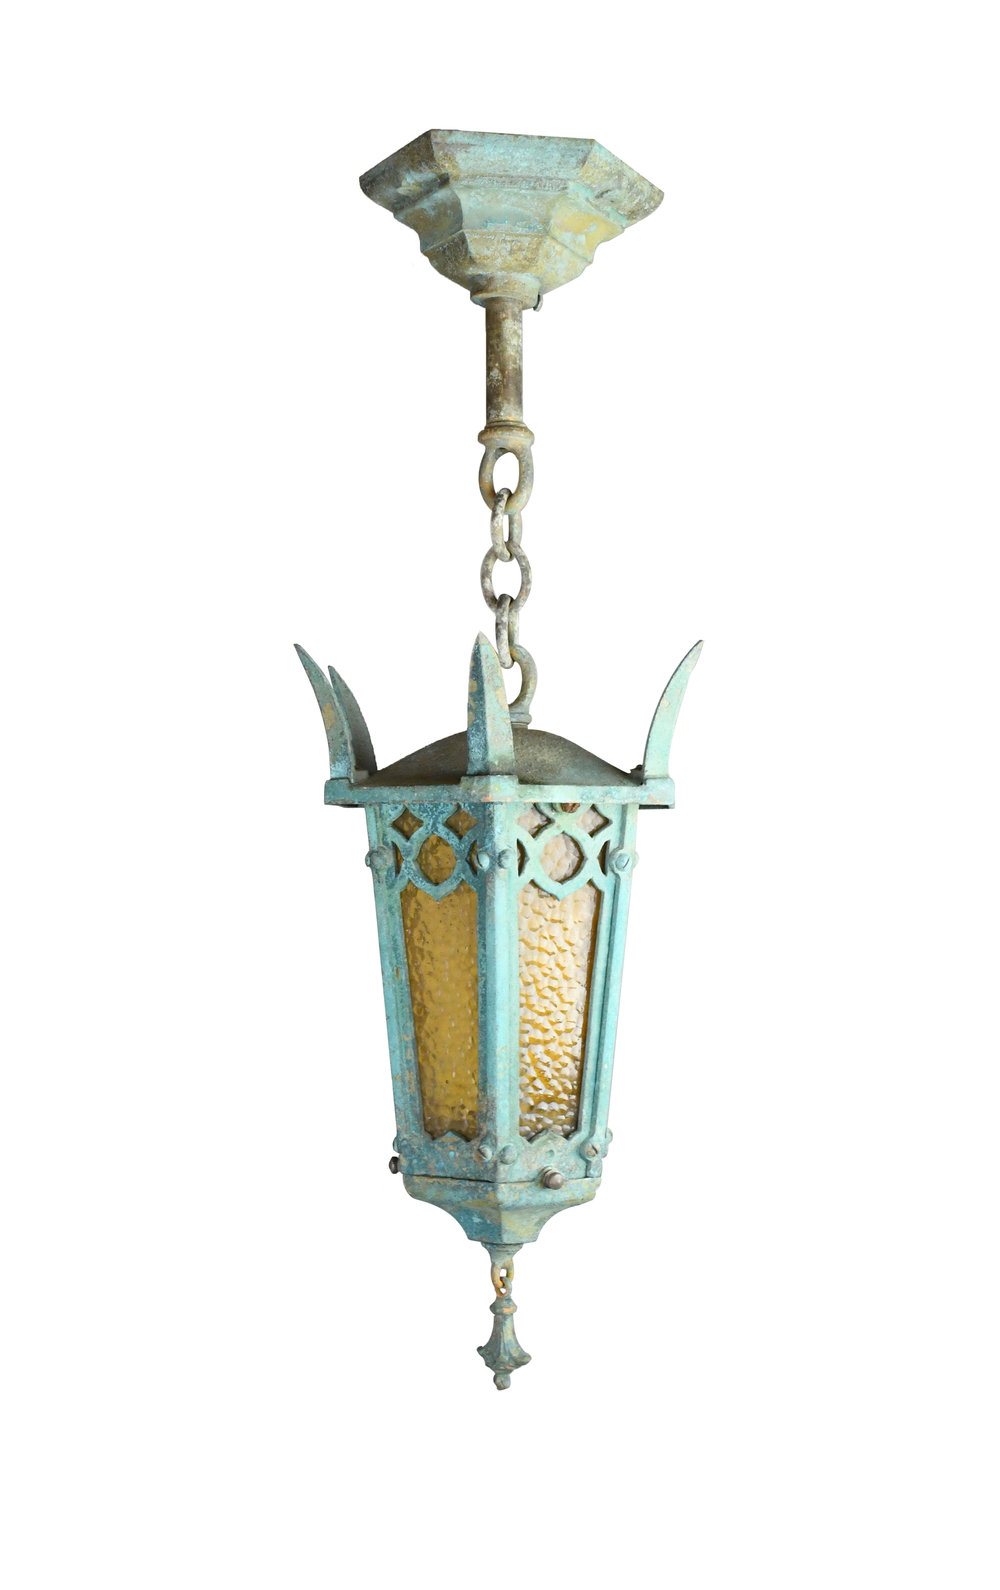 47549-casr-bronze-exterior-pendant-with-amber-glass-patina-overall-4.jpg